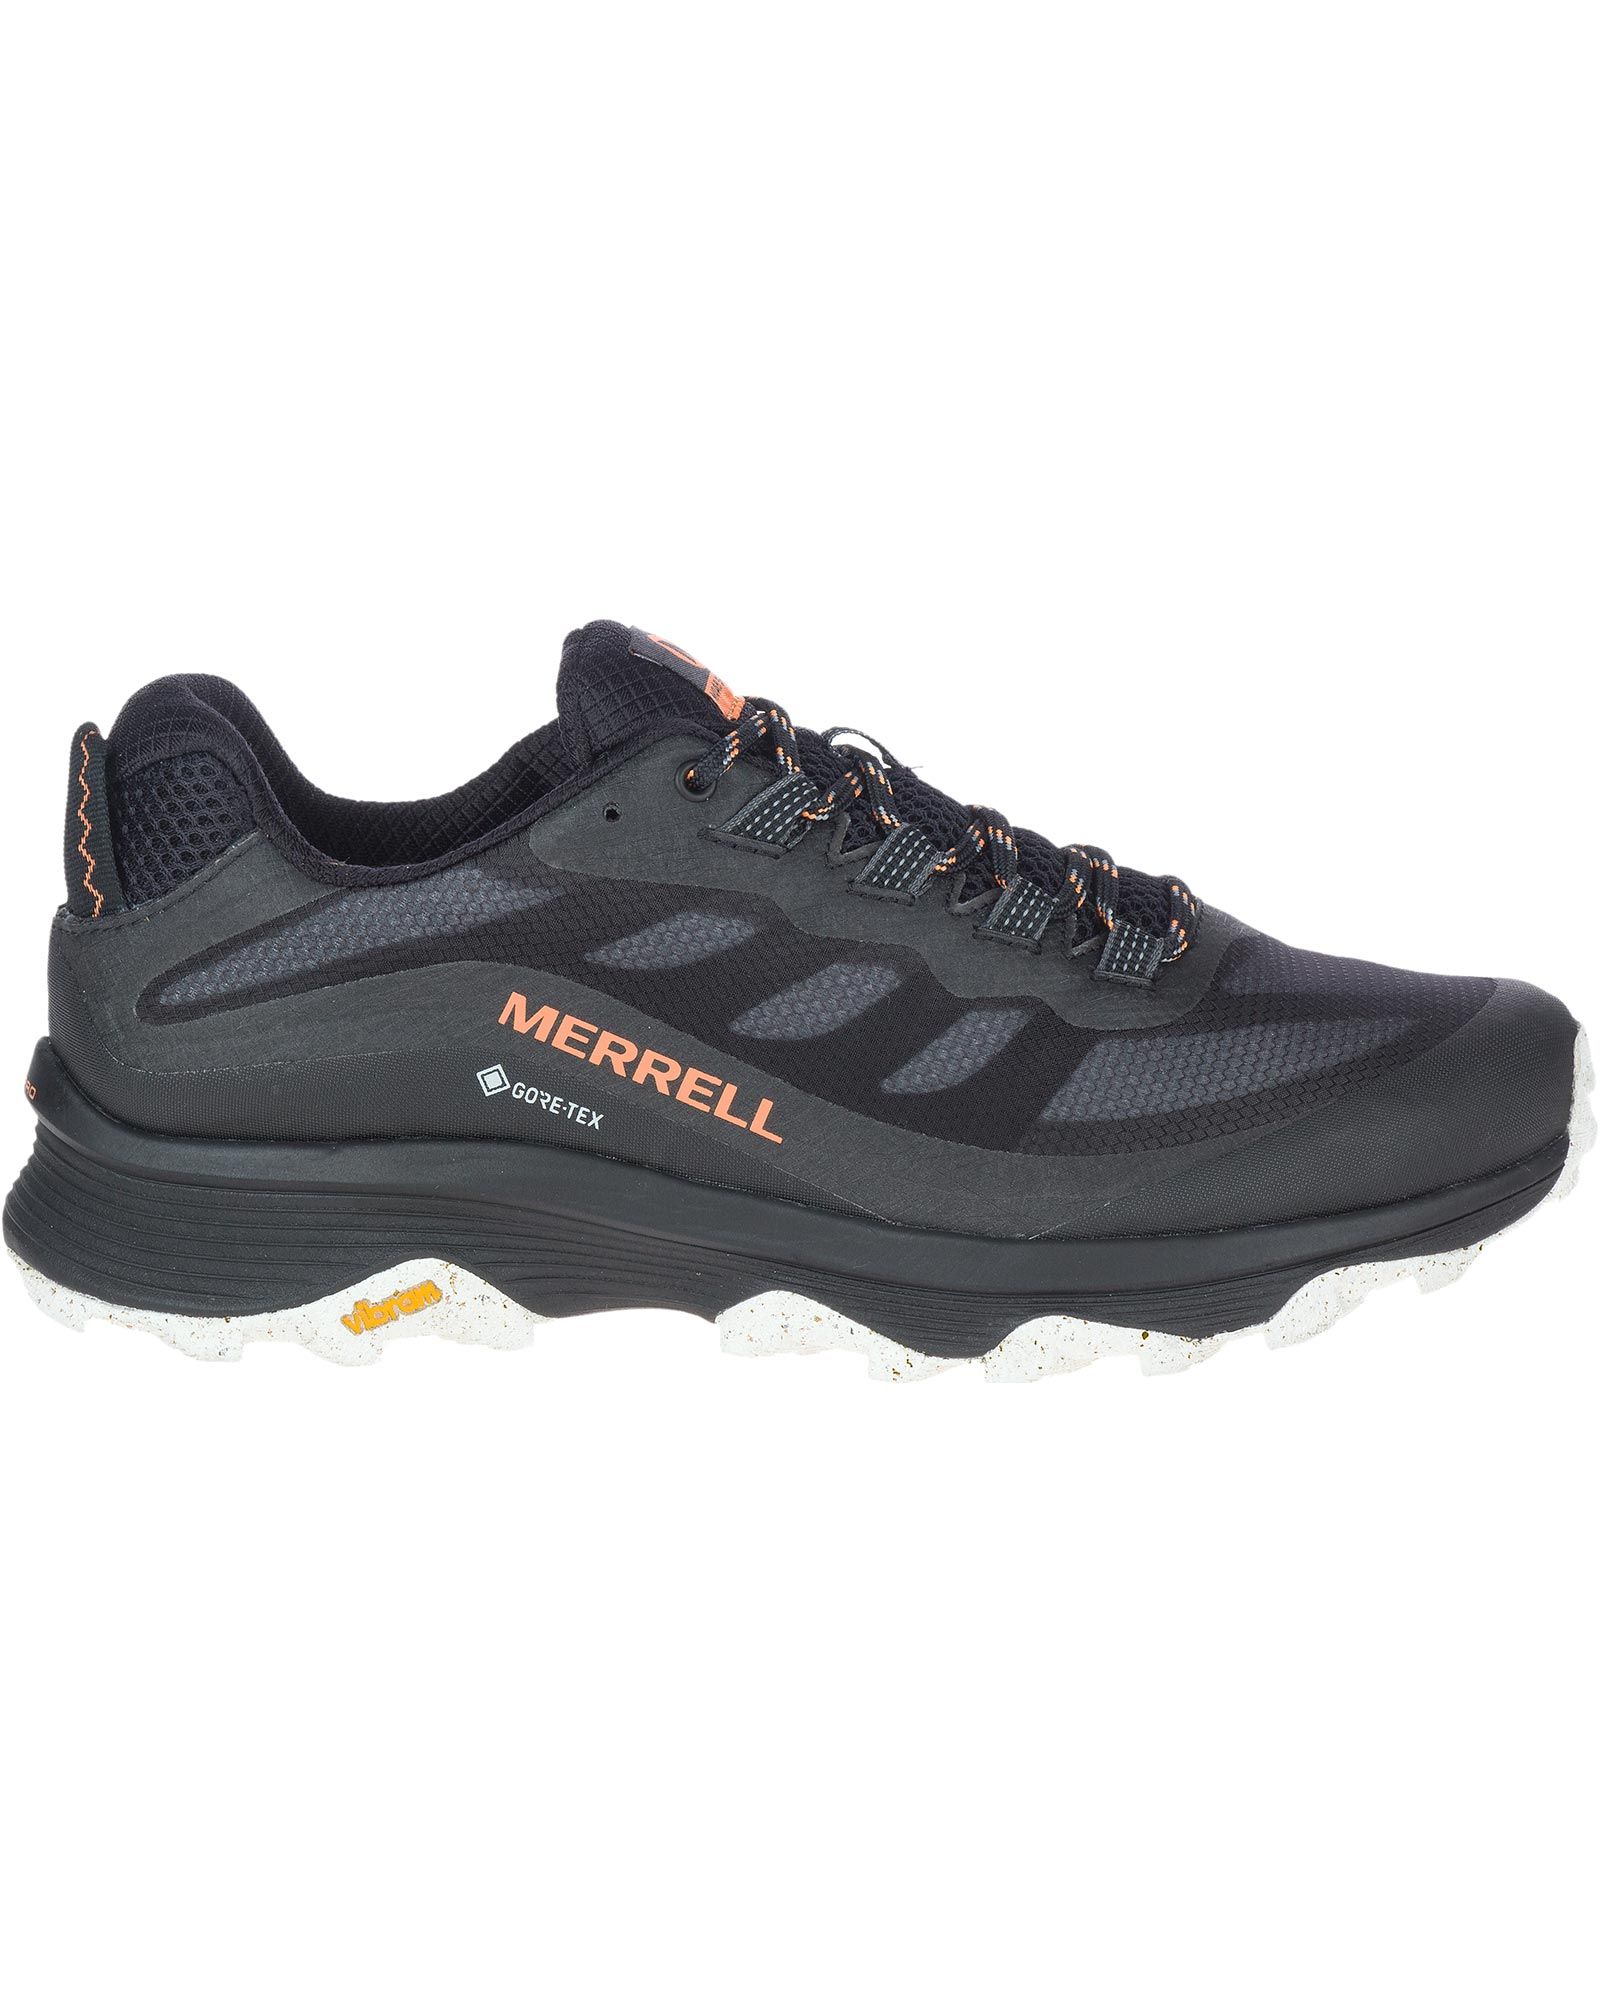 Merrell Moab Speed GORE-TEX Men's Shoes 0